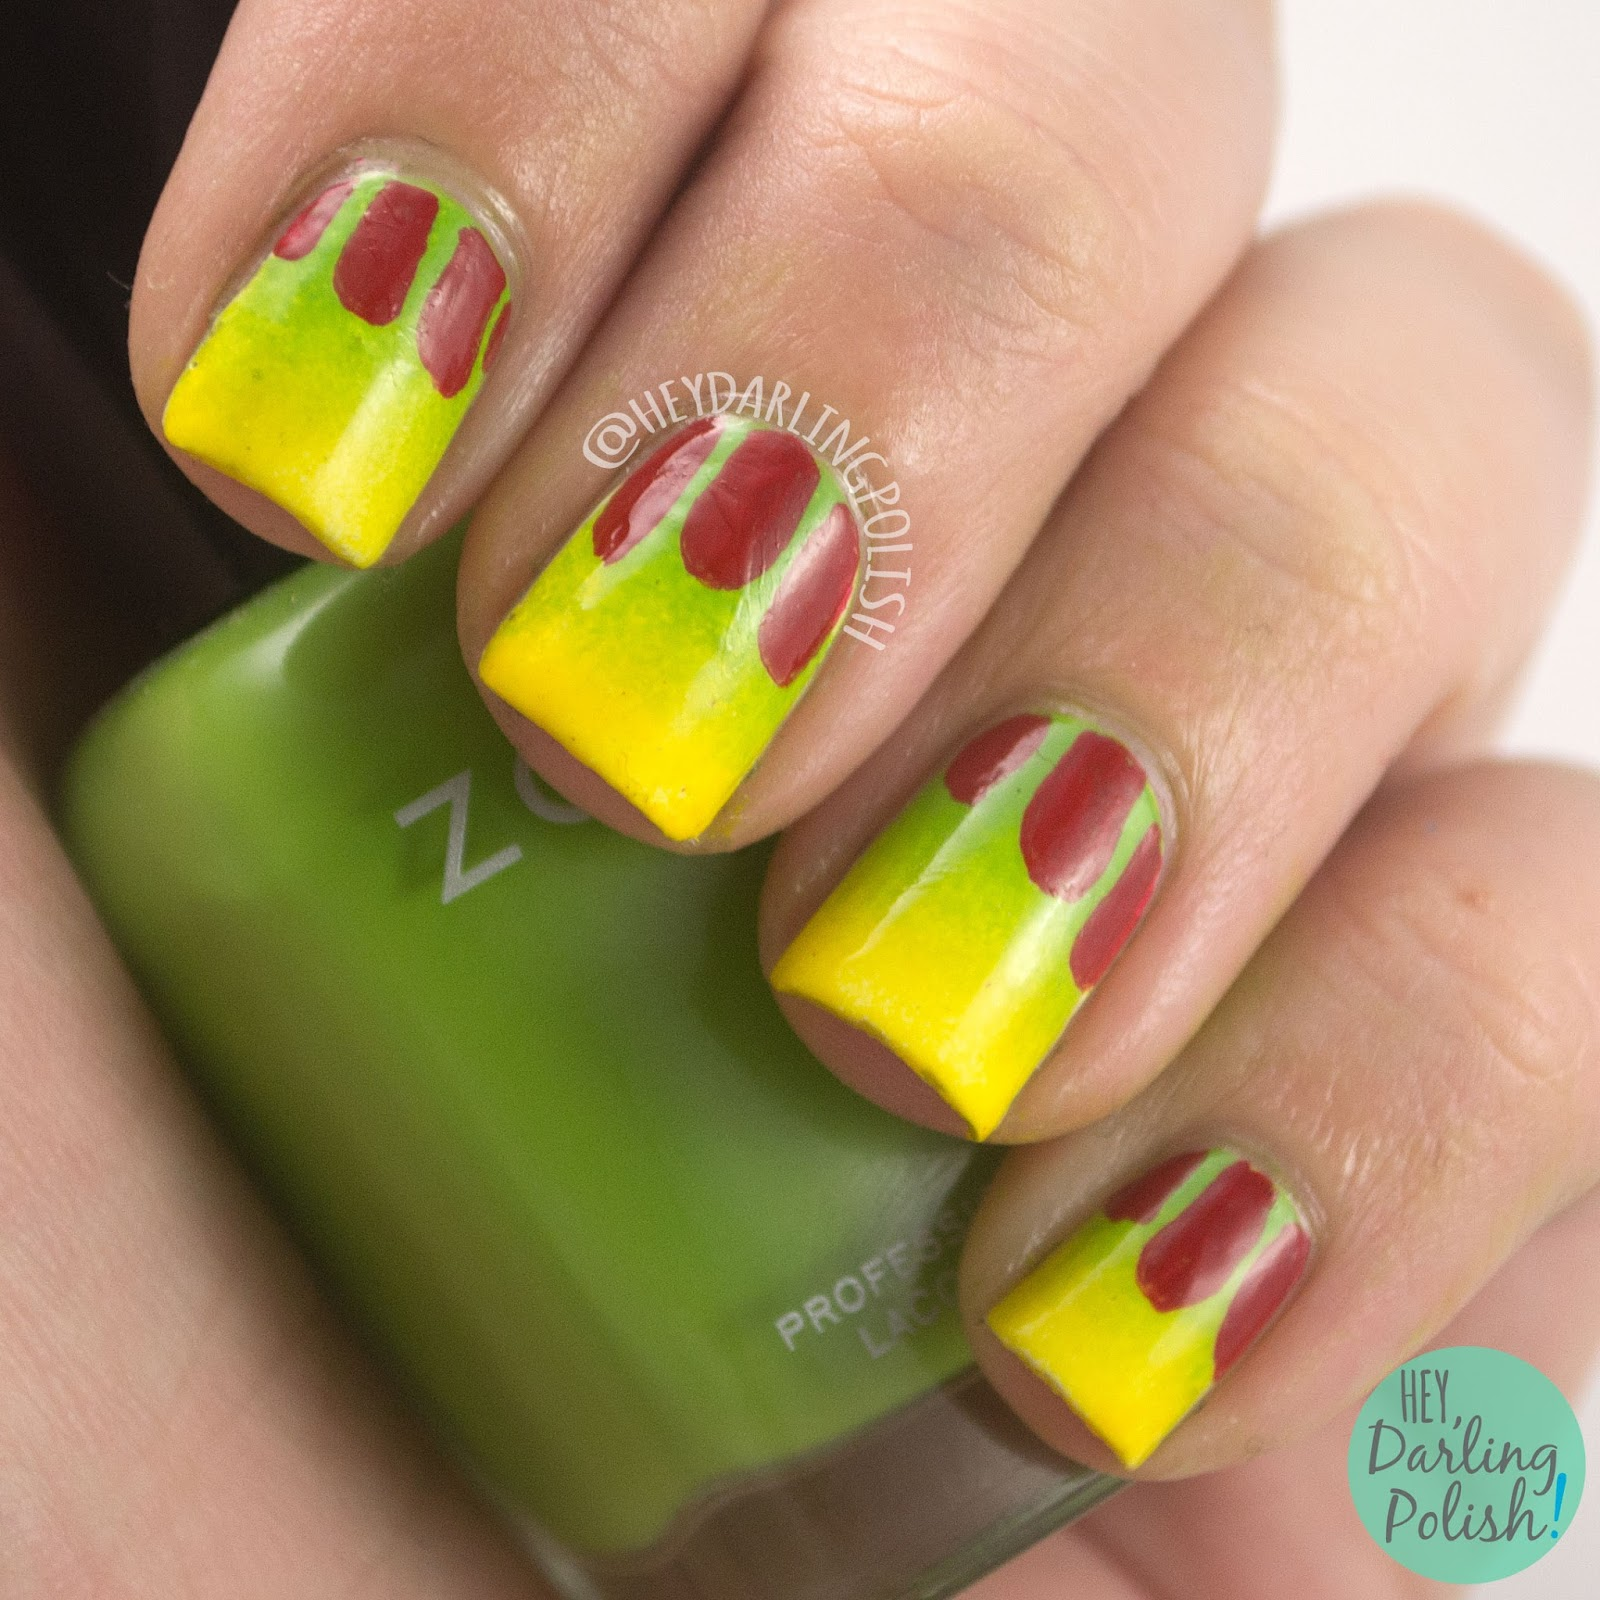 Hey, Darling Polish!: 31 Day Challenge: Inspired By A Movie